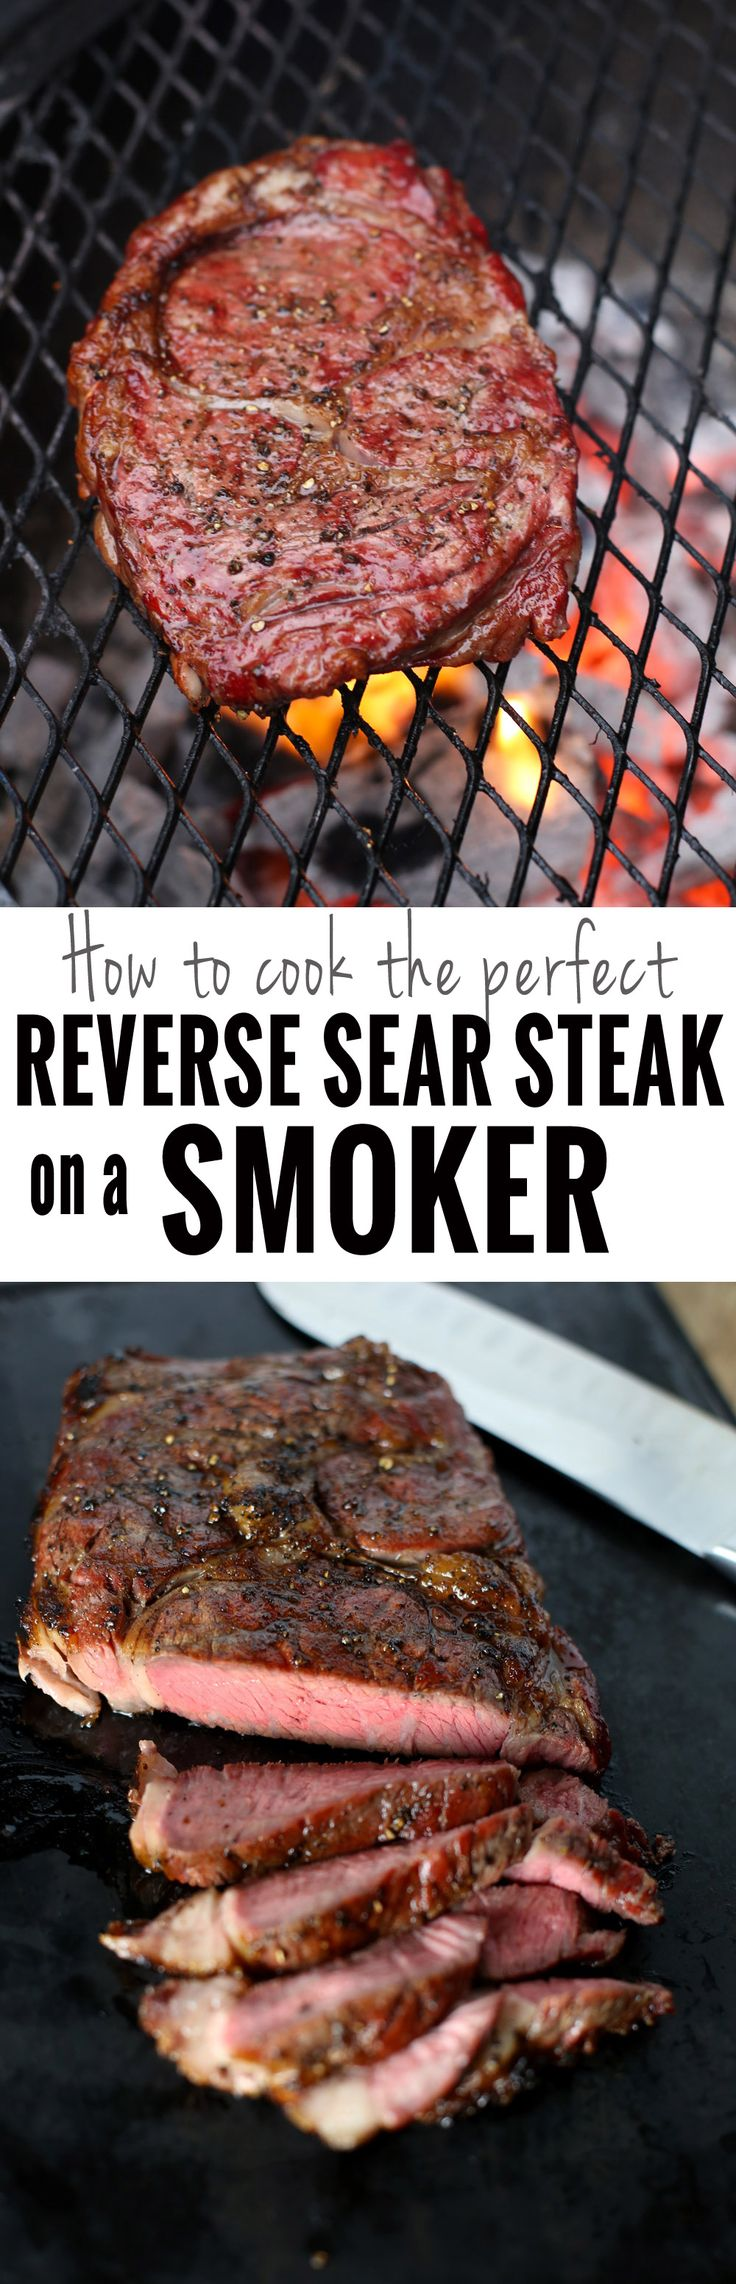 The Perfect Reverse Sear Steak using your Smoker. Using this method, you can get the perfect medium-rare steak at home using your smoker, then finishing on a hot grill.